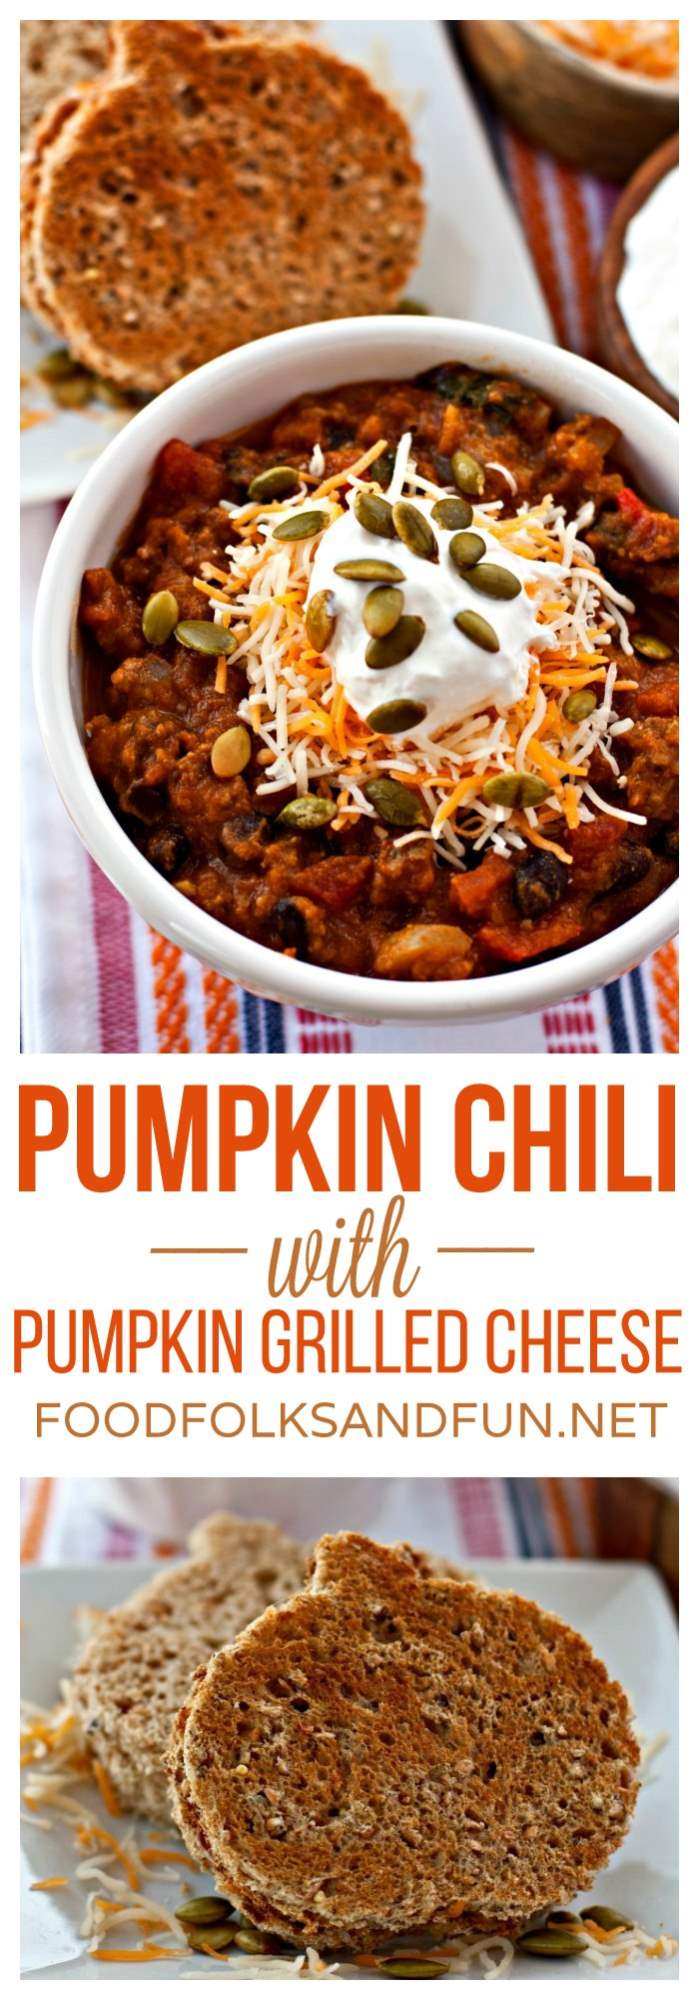 A collage of pumpkin chili and pumpkin grilled cheese with text overlay for Pinterest